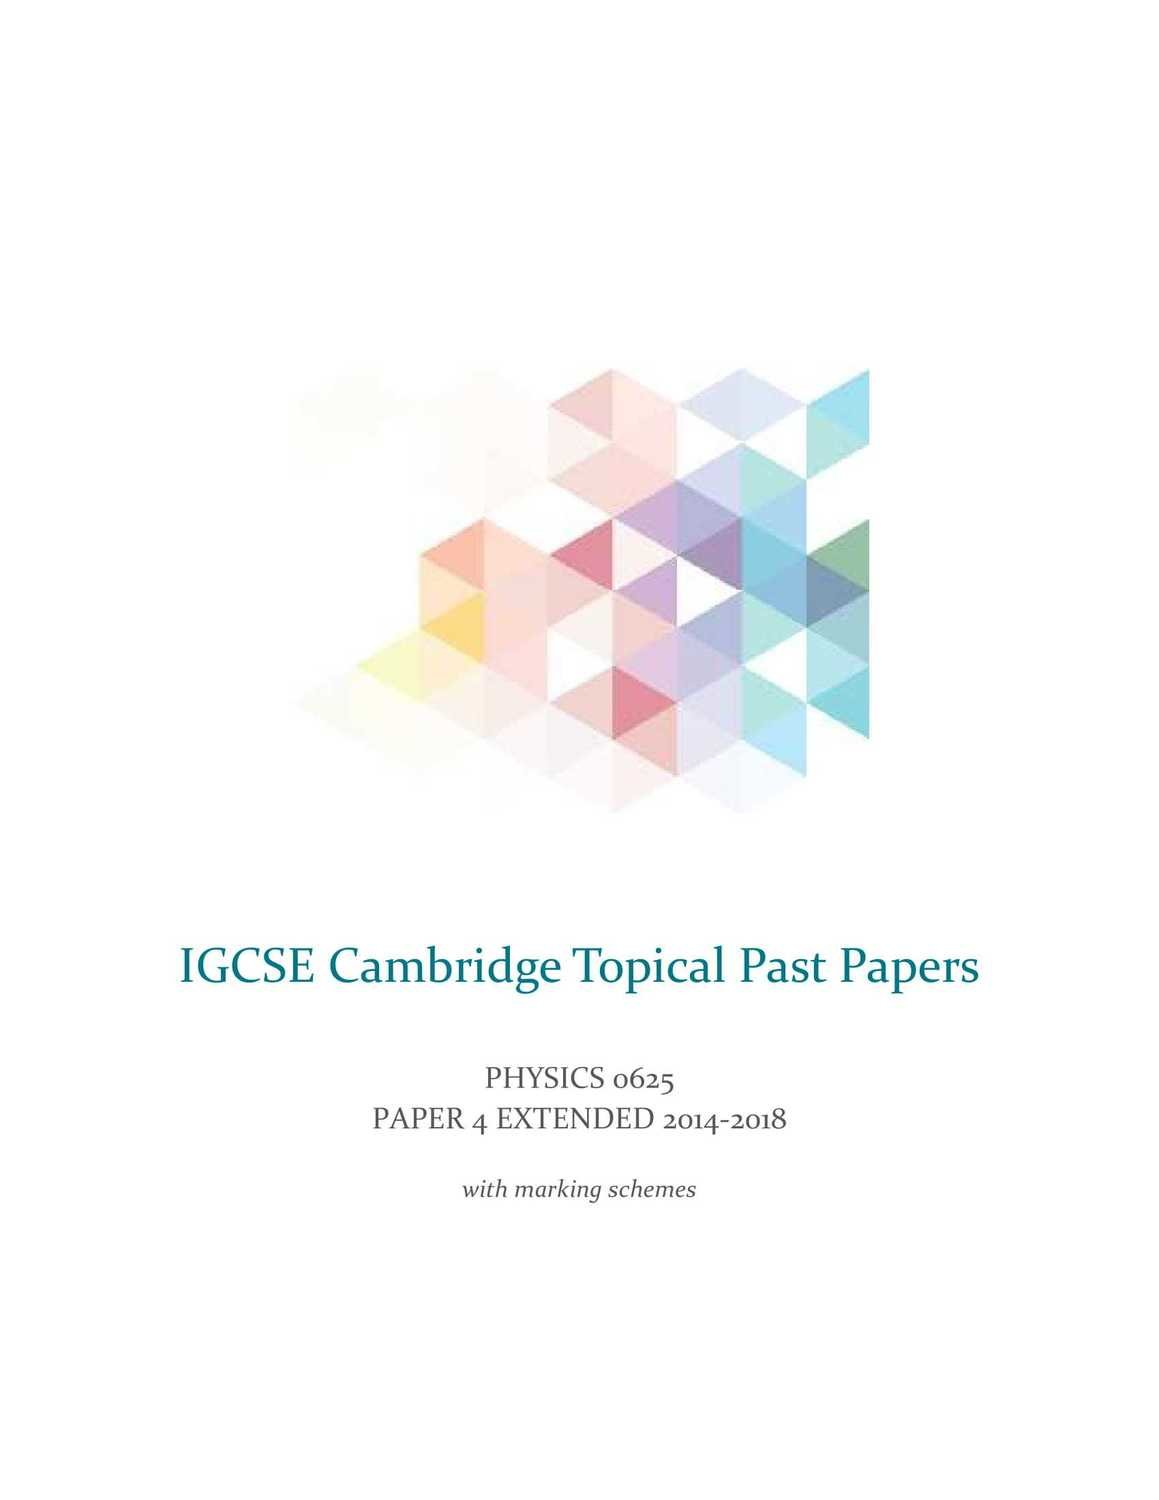 IGCSE Physics Cambridge 0625 Topical Past Year Questions